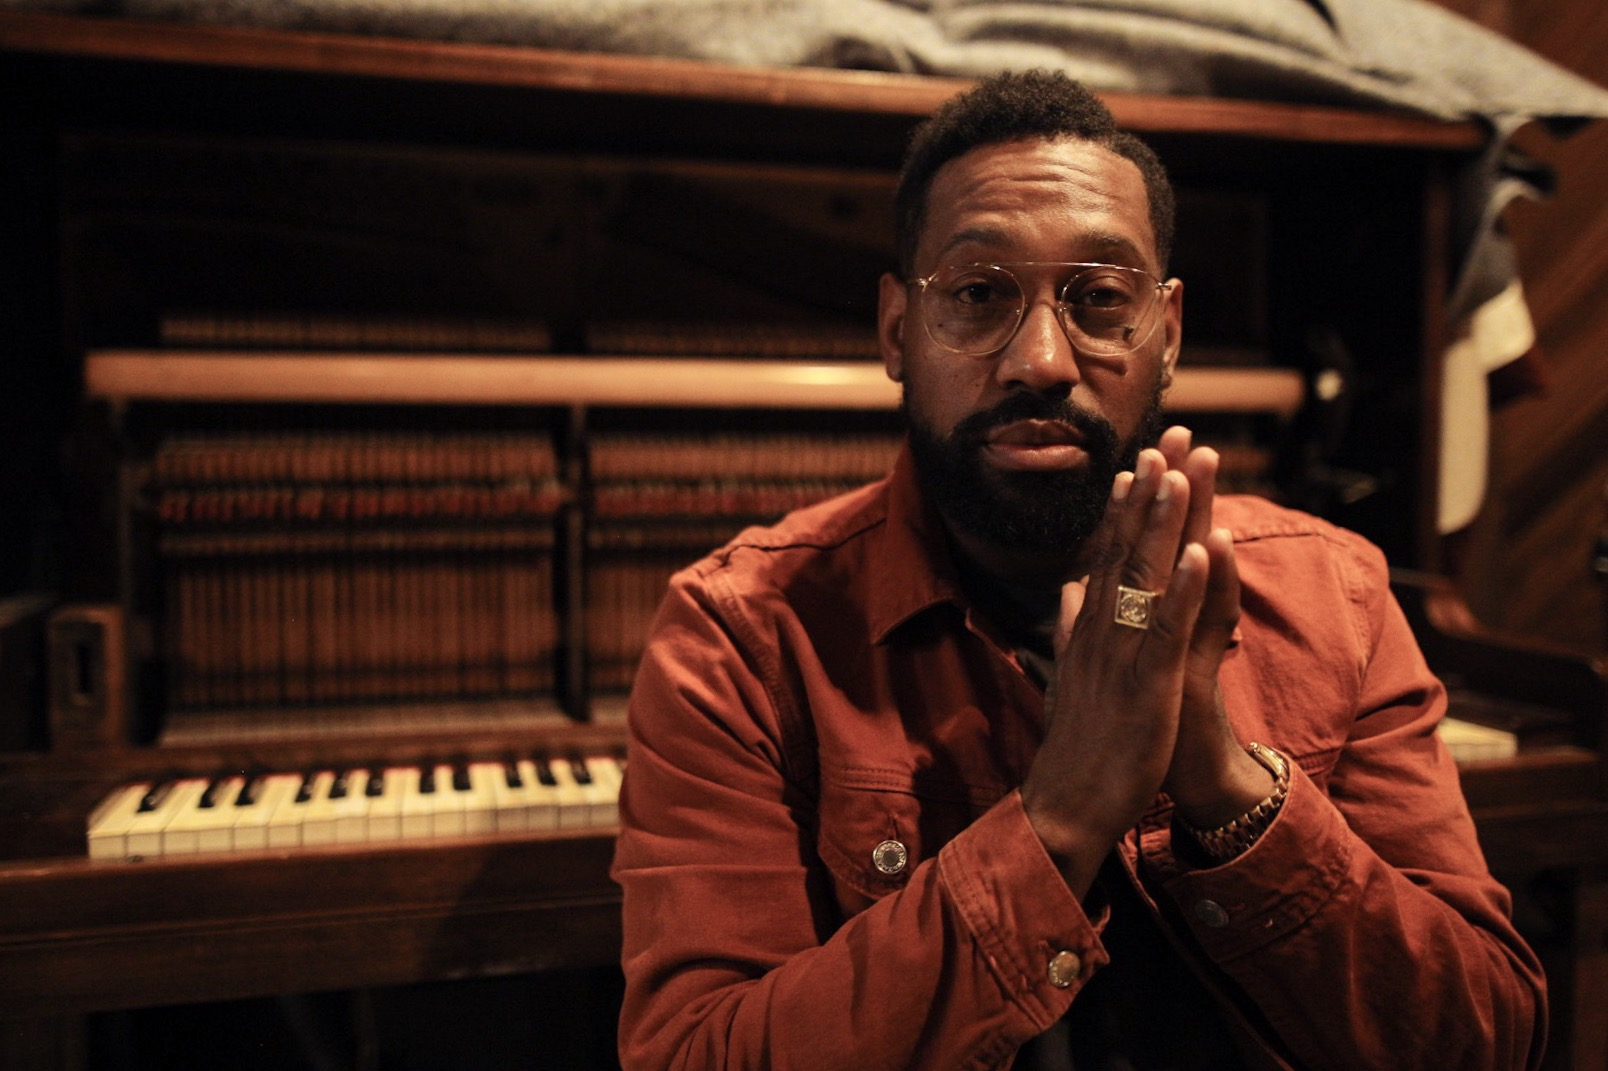 """PJ MORTON HITS BILLBOARD GOSPEL AIRPLAY CHART TOP TEN WITH """"ALL IN HIS PLAN"""" FT. MARY MARY & LE'ANDRIA JOHNSON"""